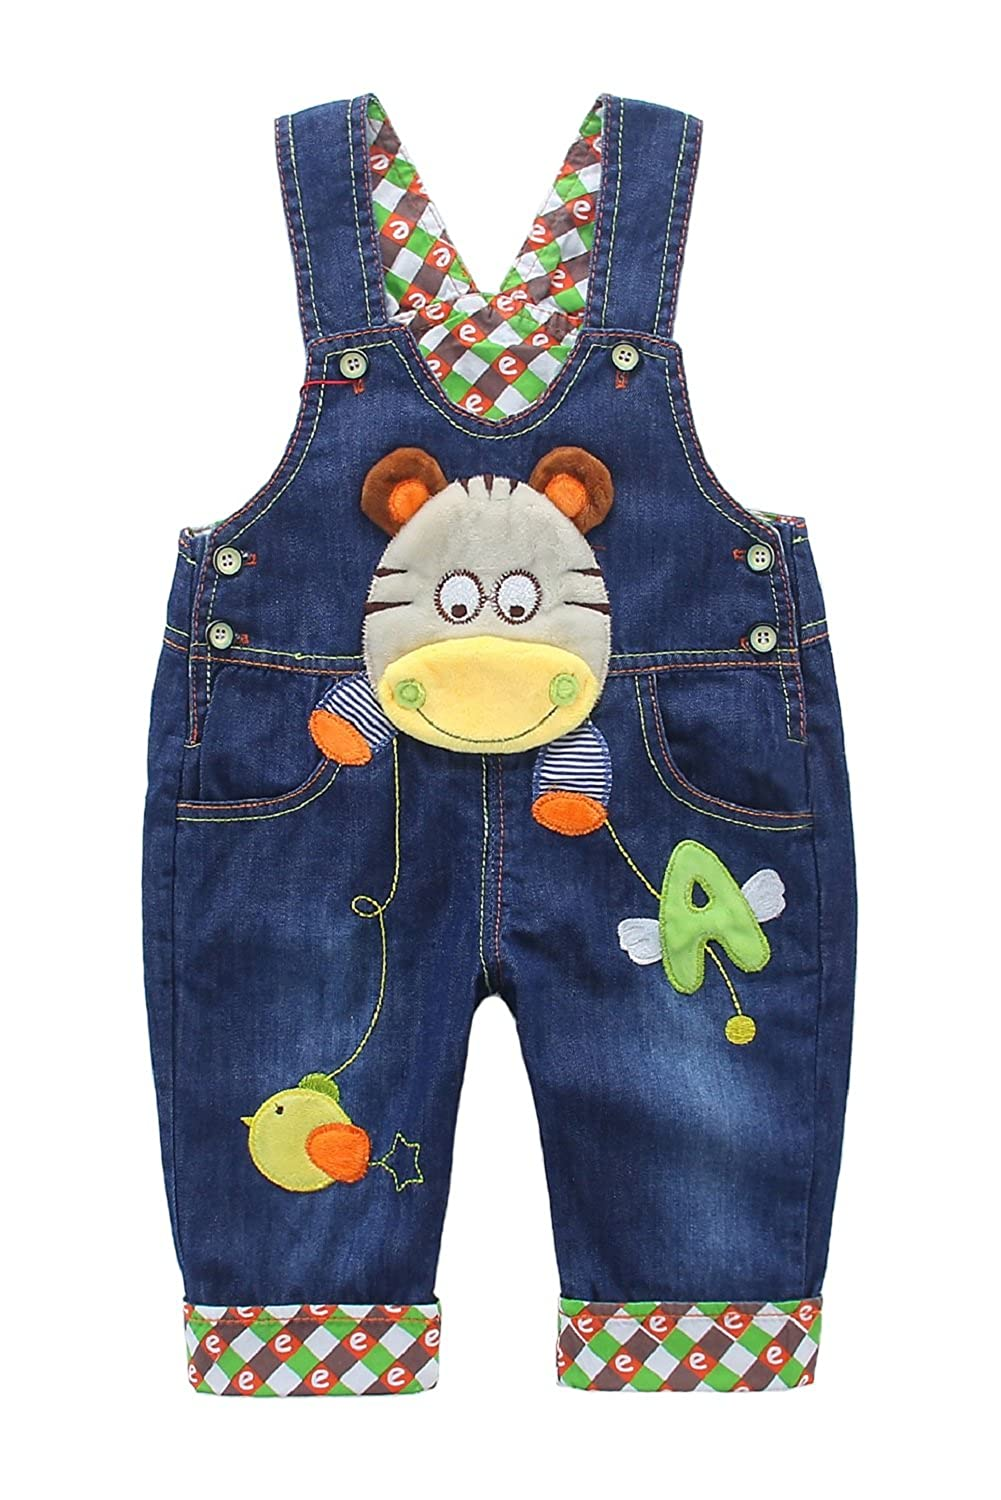 DEBAIJIA Kids Baby Denim Dungarees Boys Girls Toddler Bib Overall Jeans with Suspenders Hippo Pattern